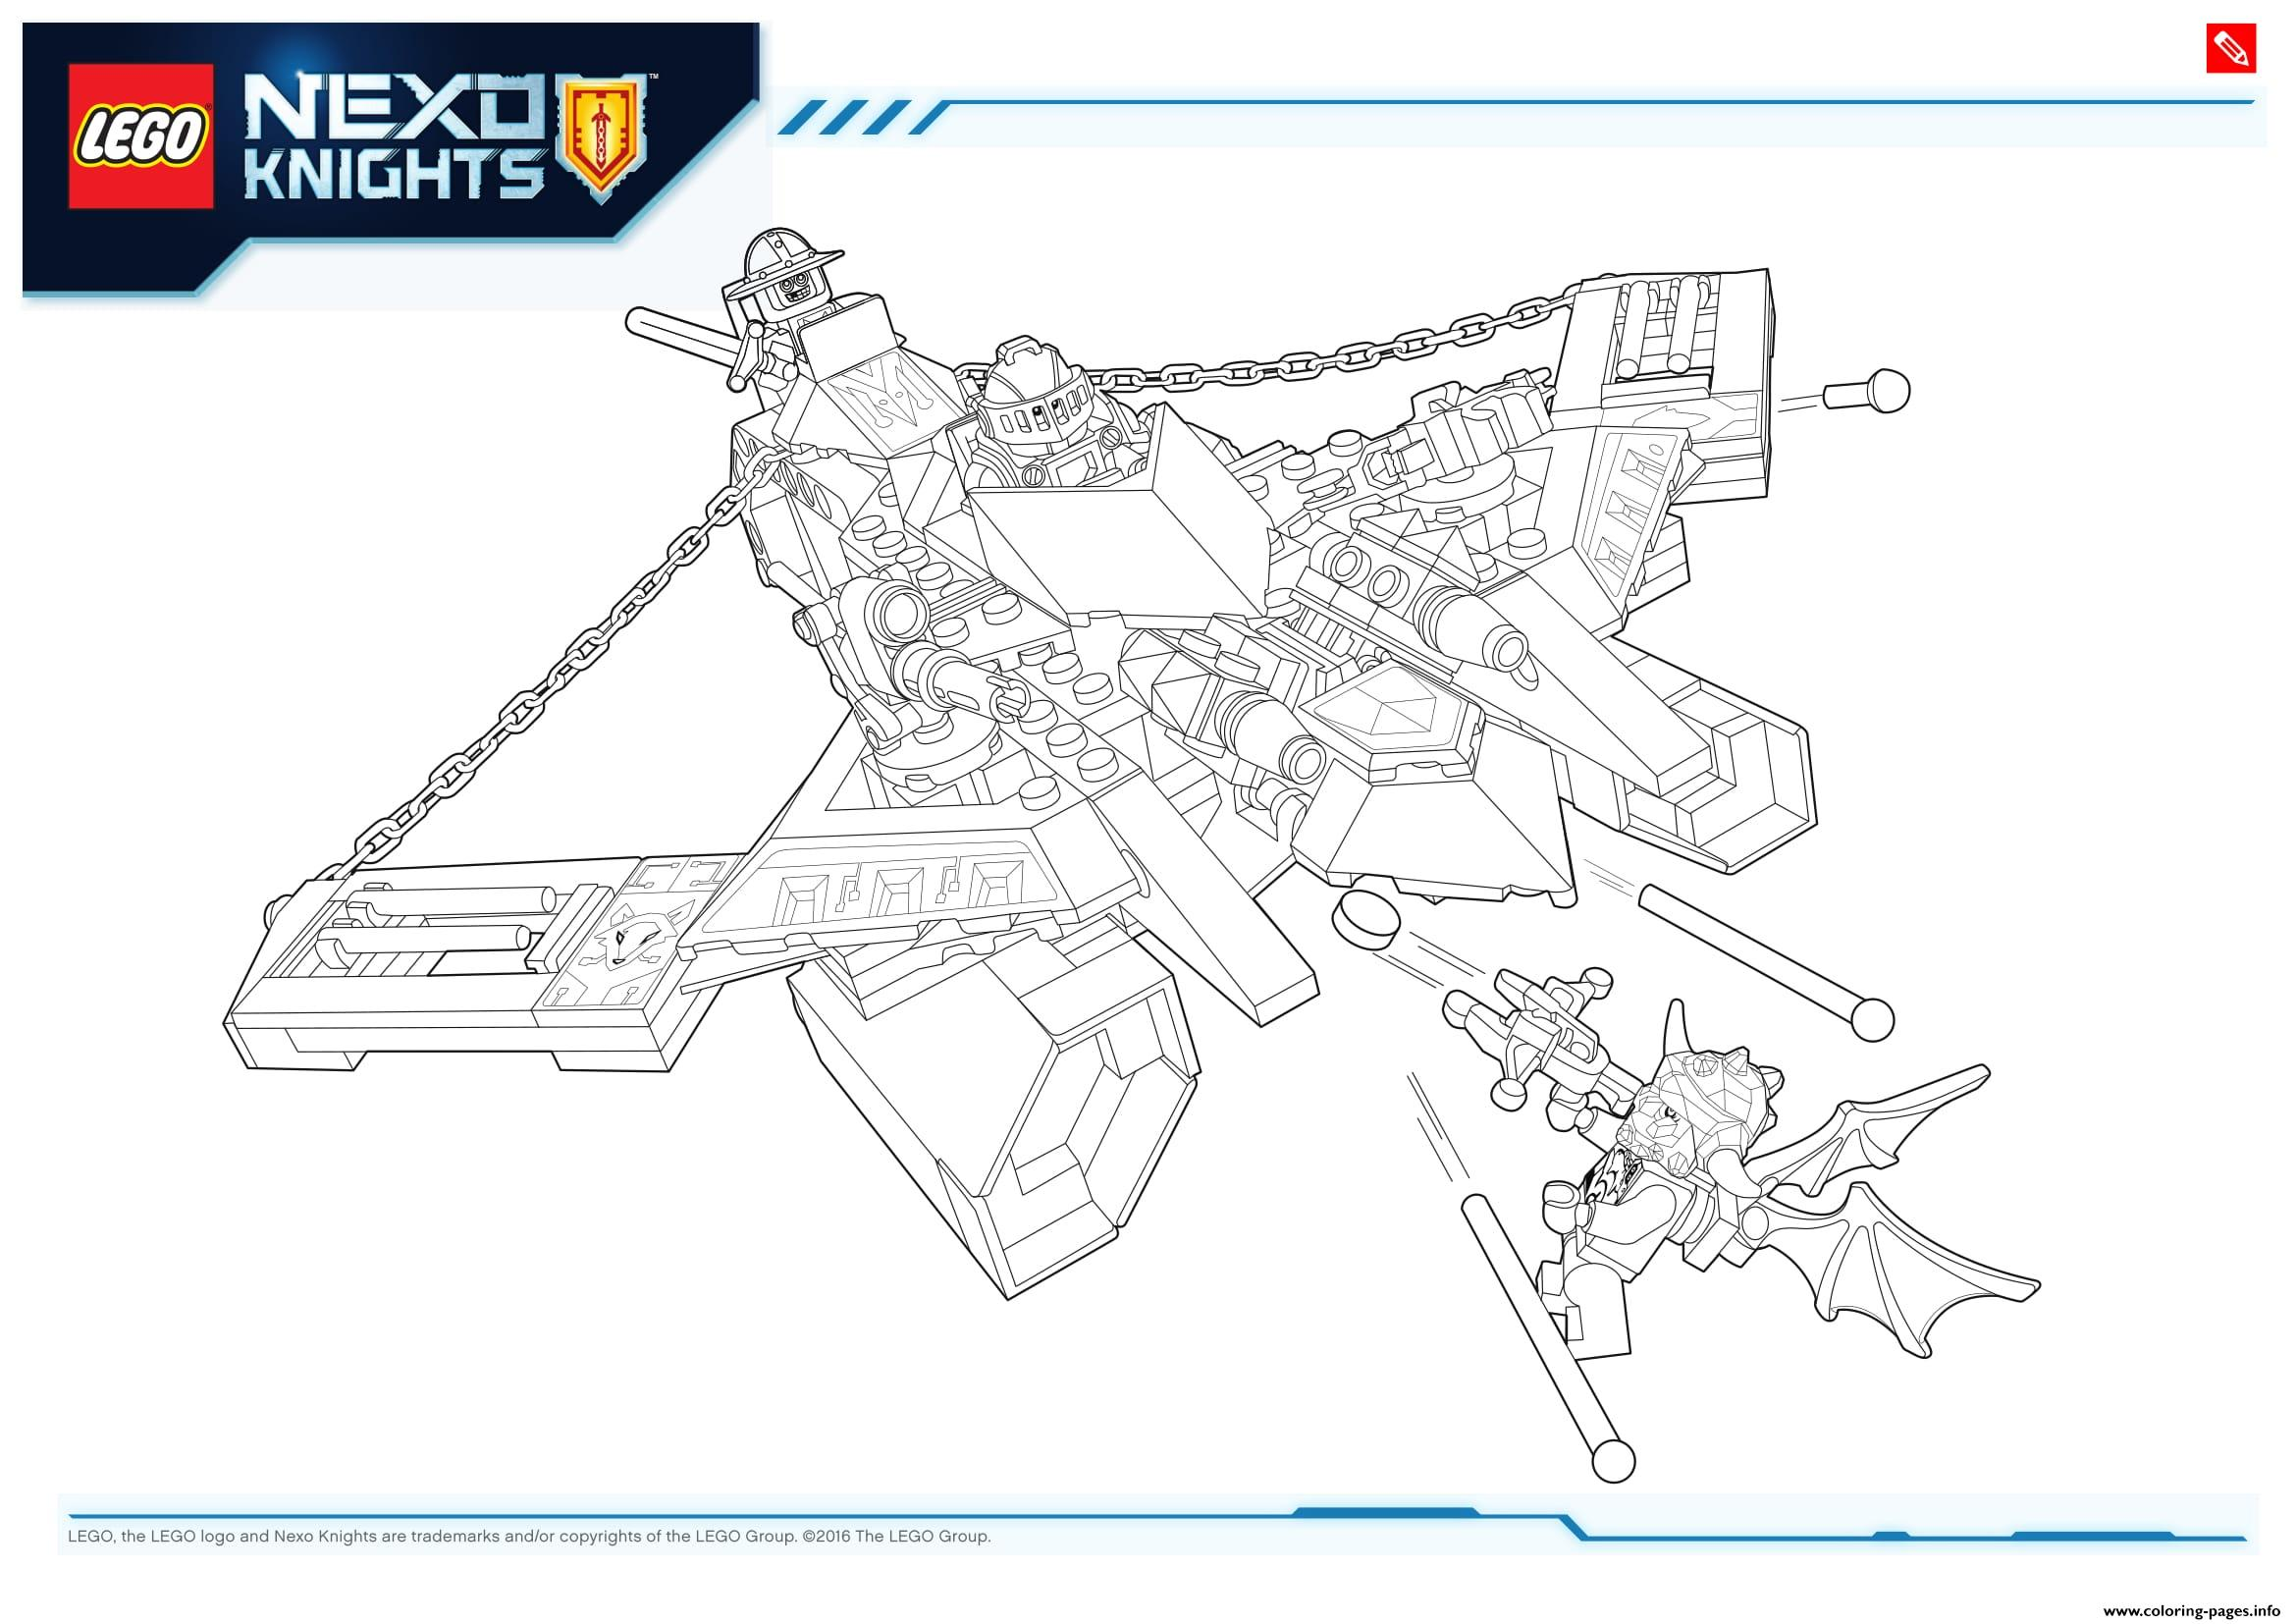 Lego NEXO KNIGHTS Products 1 Coloring Pages Printable